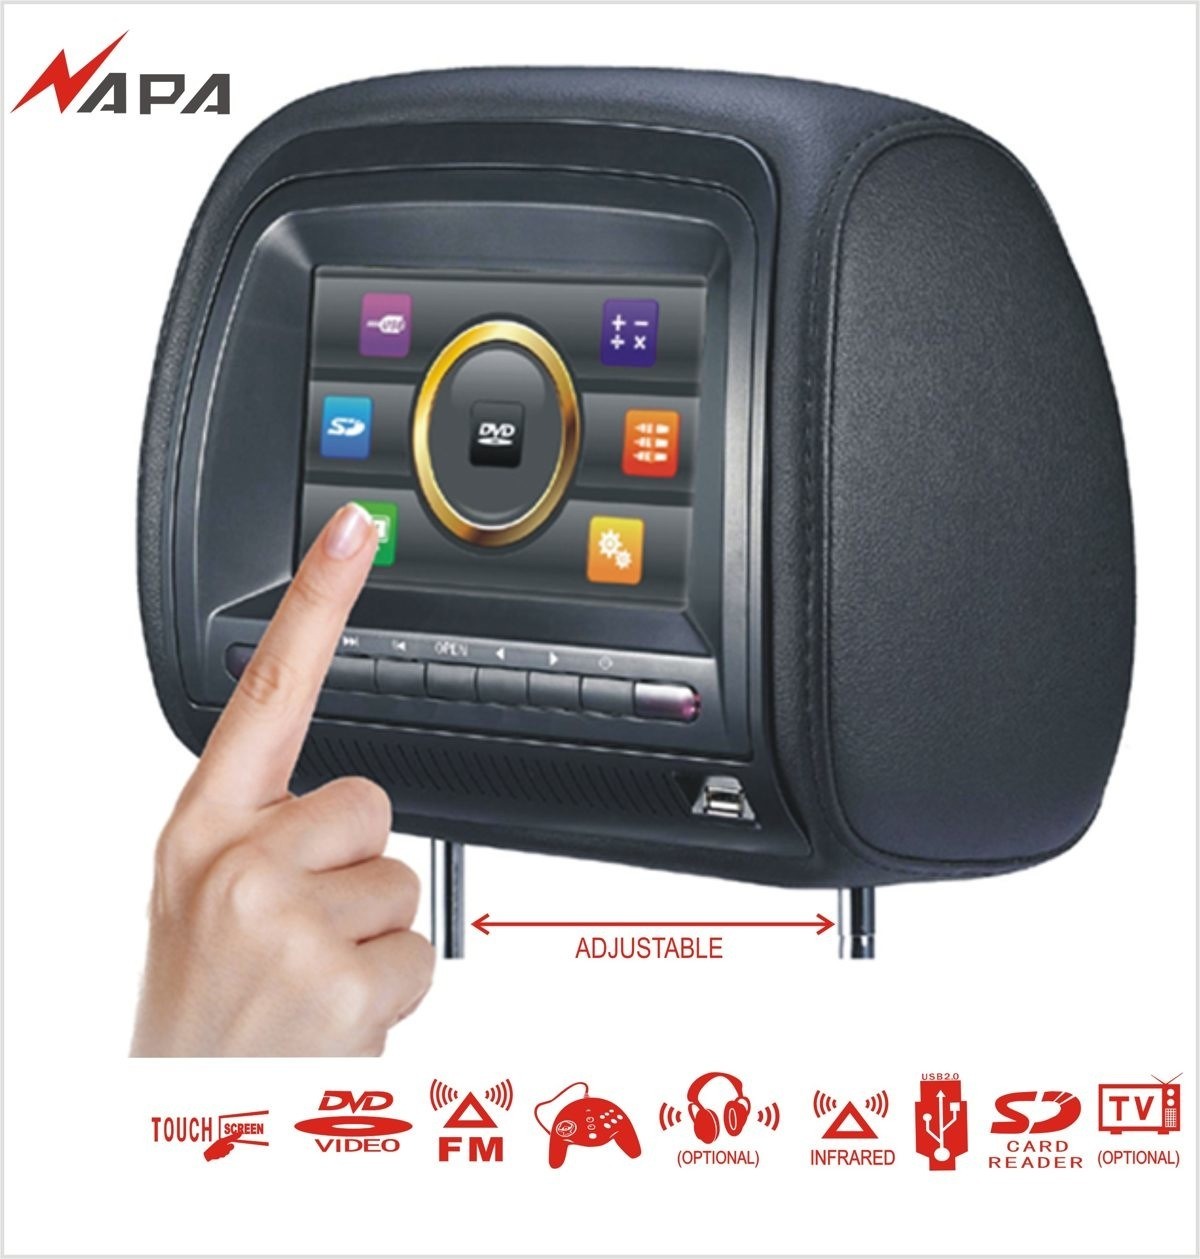 voiture dvd h666d d 39 appui t te voiture dvd h666d d 39 appui t te fournis par guangzhou napa. Black Bedroom Furniture Sets. Home Design Ideas